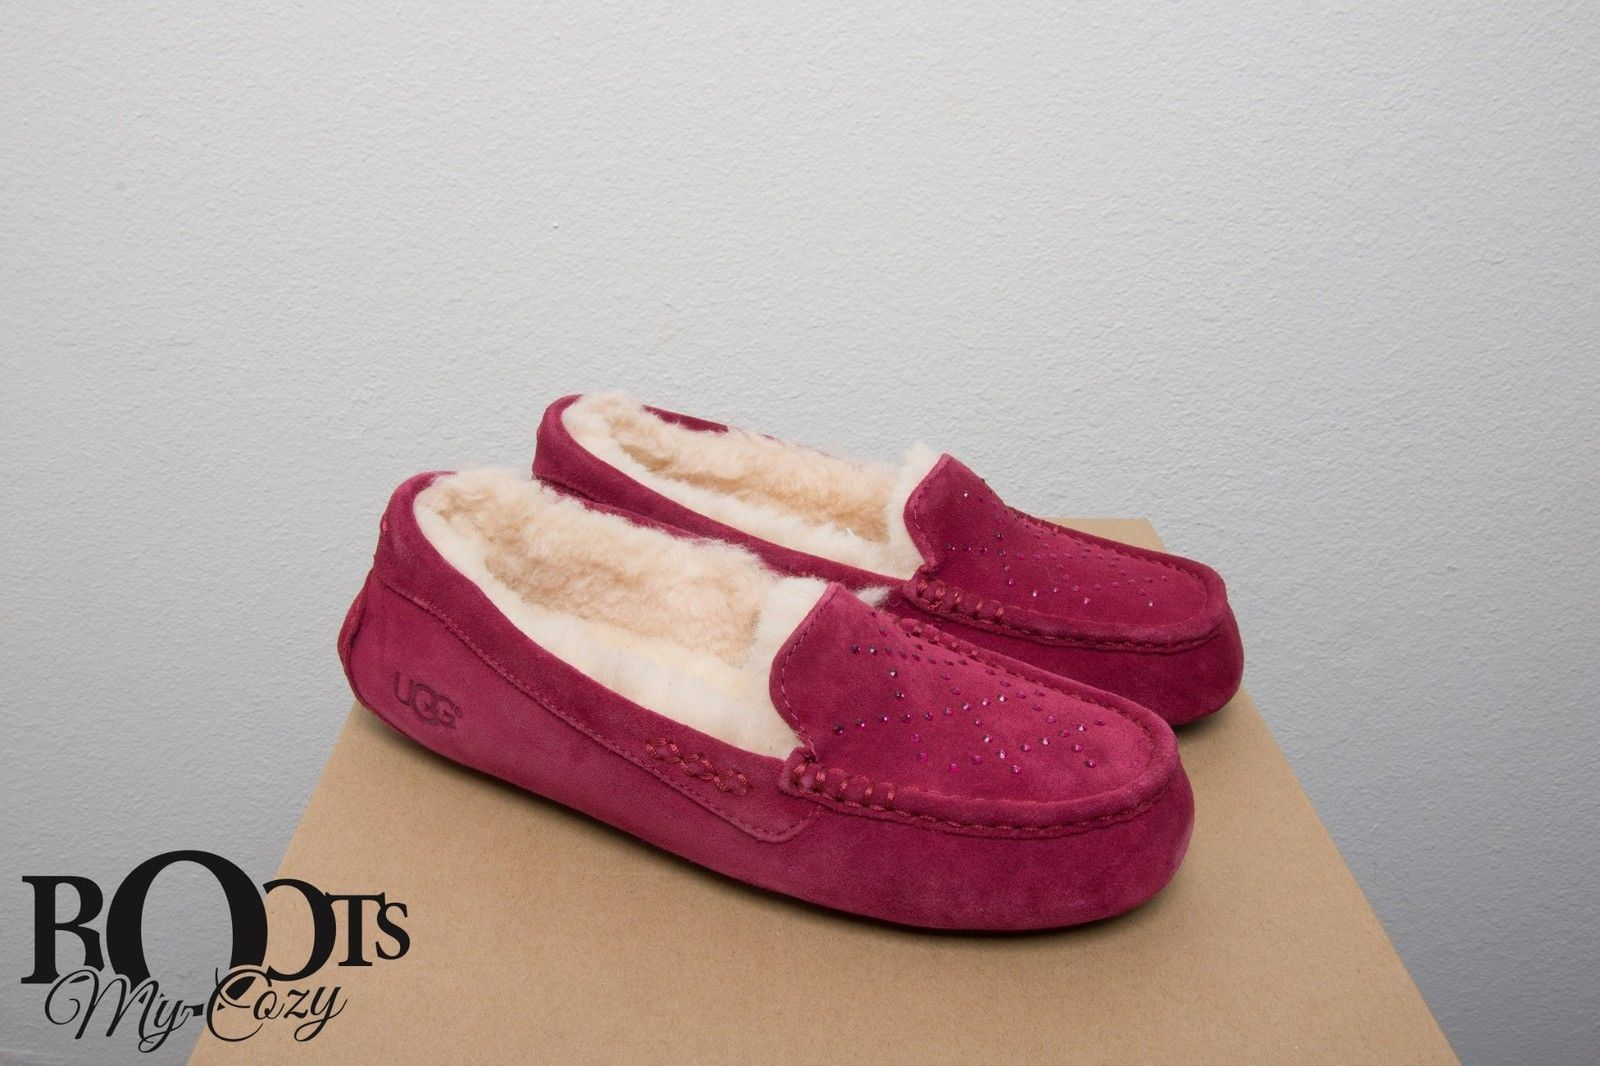 cf6ac7f4e66 UGG Ansley Crystal Diamond Oxblood Red Slippers